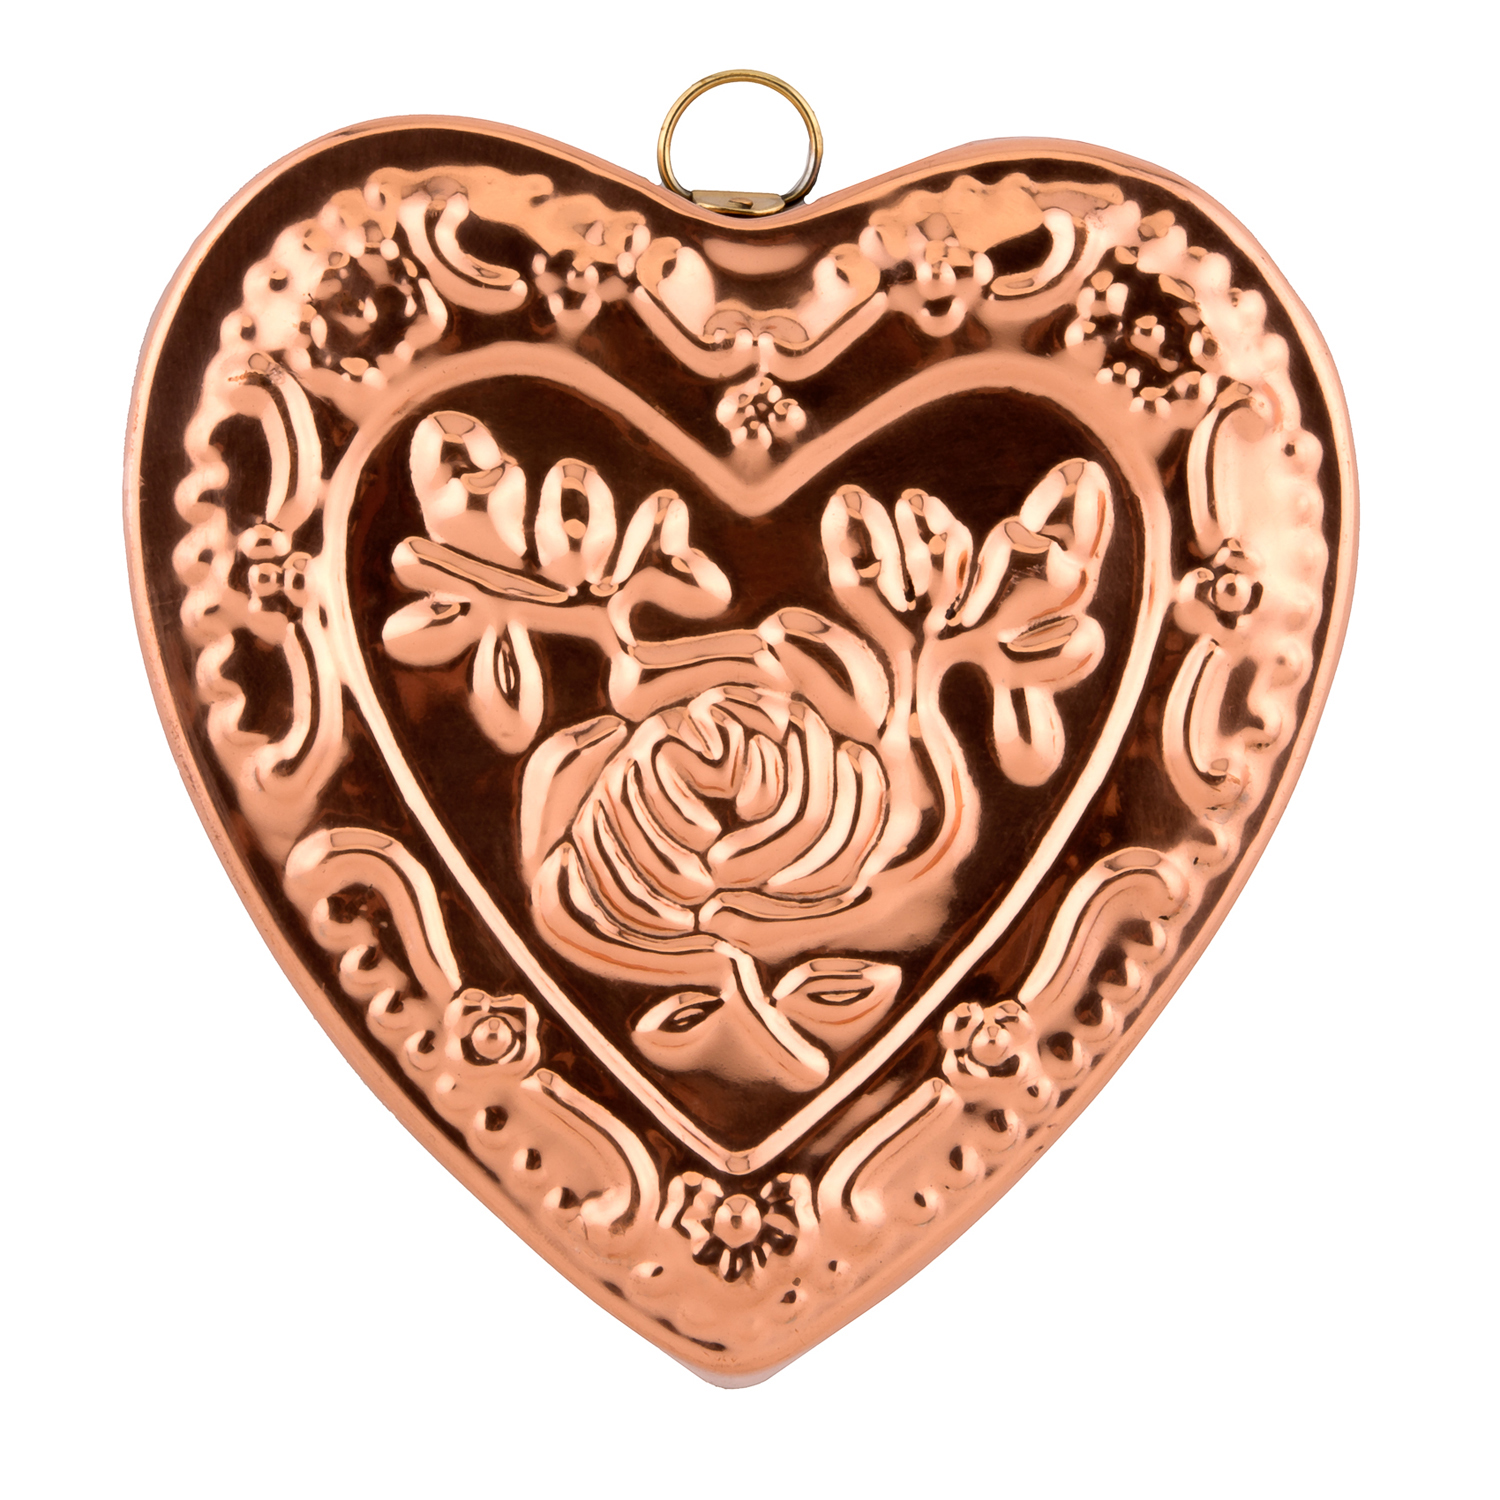 Solid Copper Heart & Rose Mold